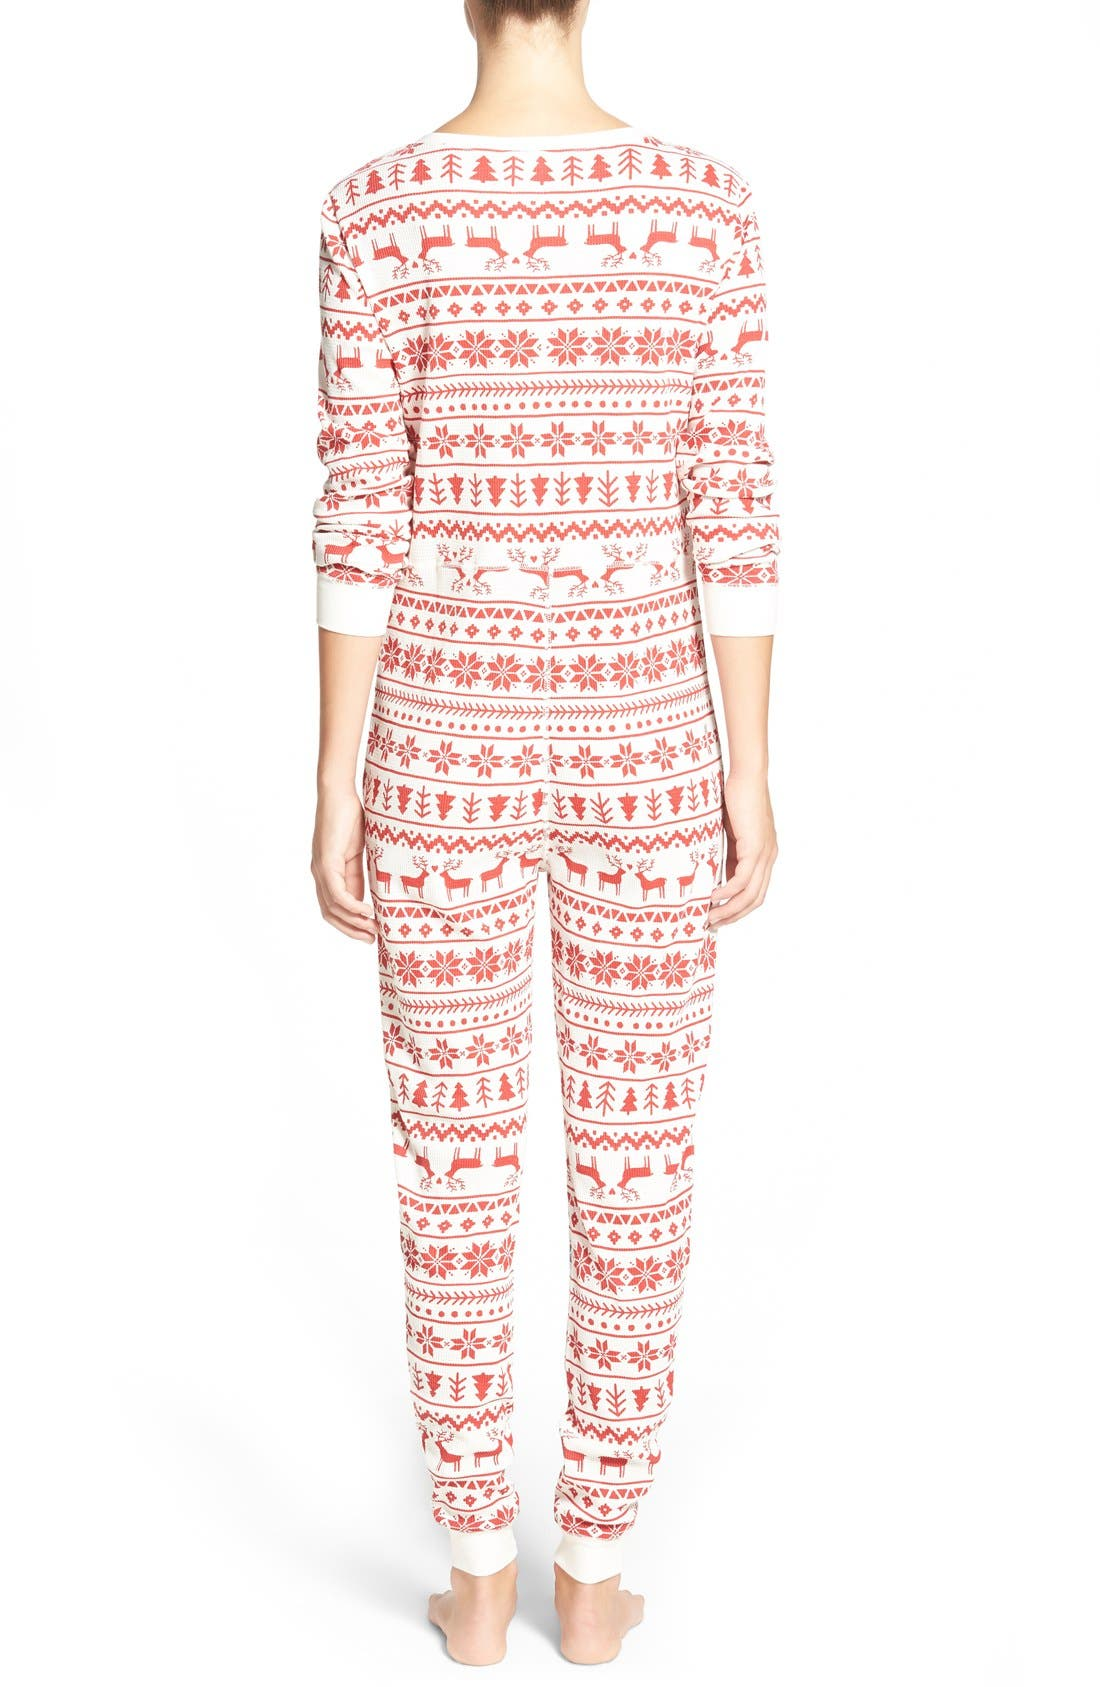 Holiday Thermal One-Piece Pajamas,                             Alternate thumbnail 2, color,                             Red Beauty Fairisle Sketch